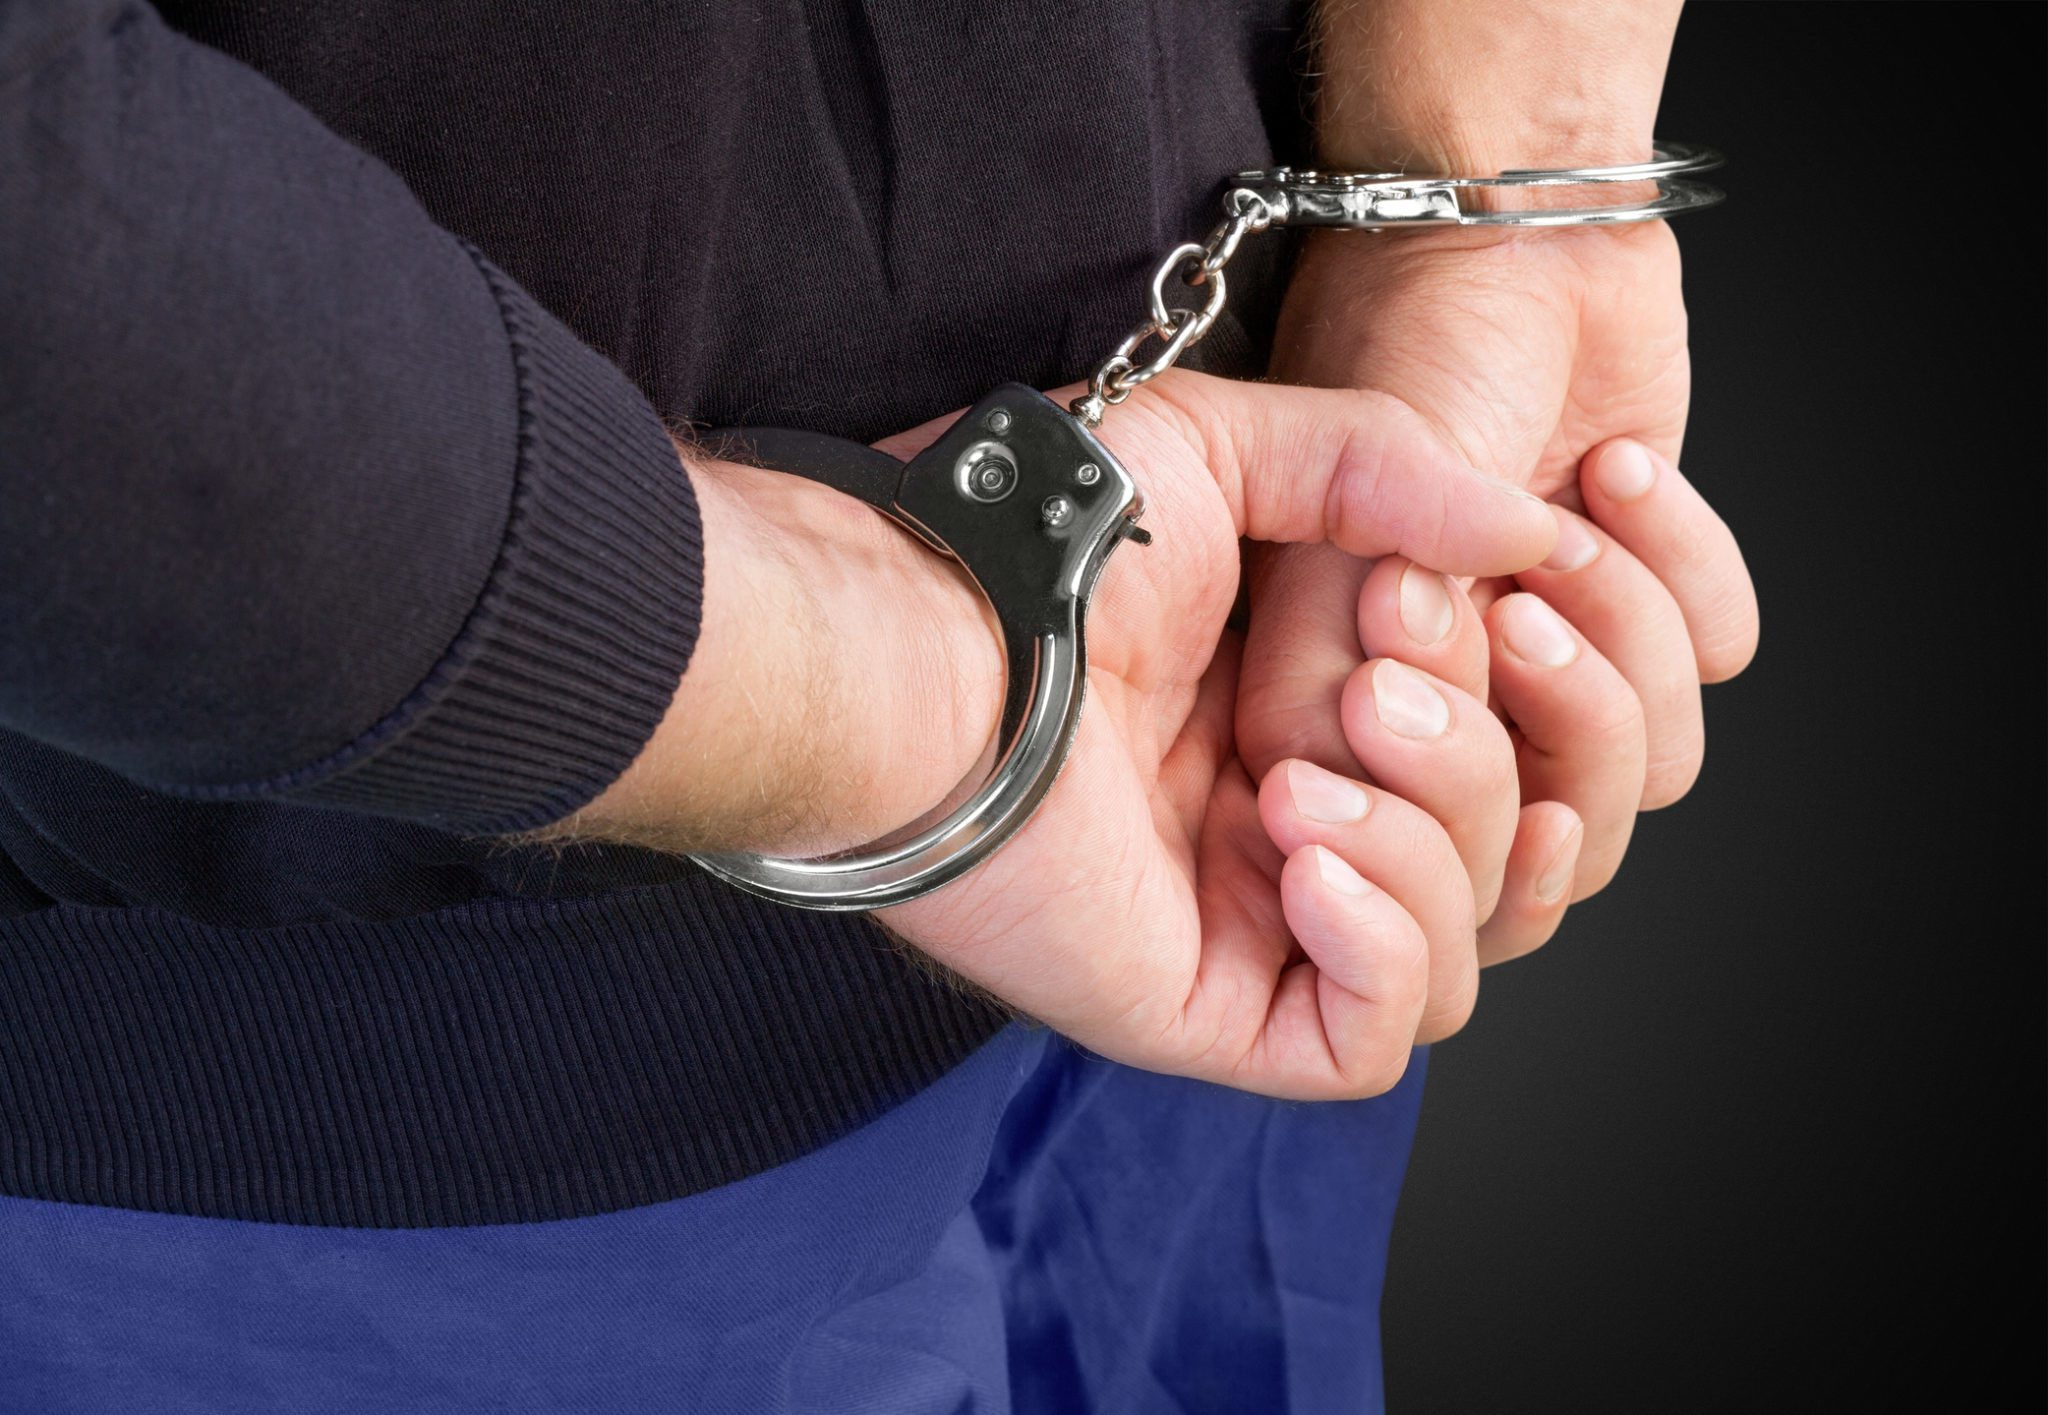 Arrested handcuffed criminal